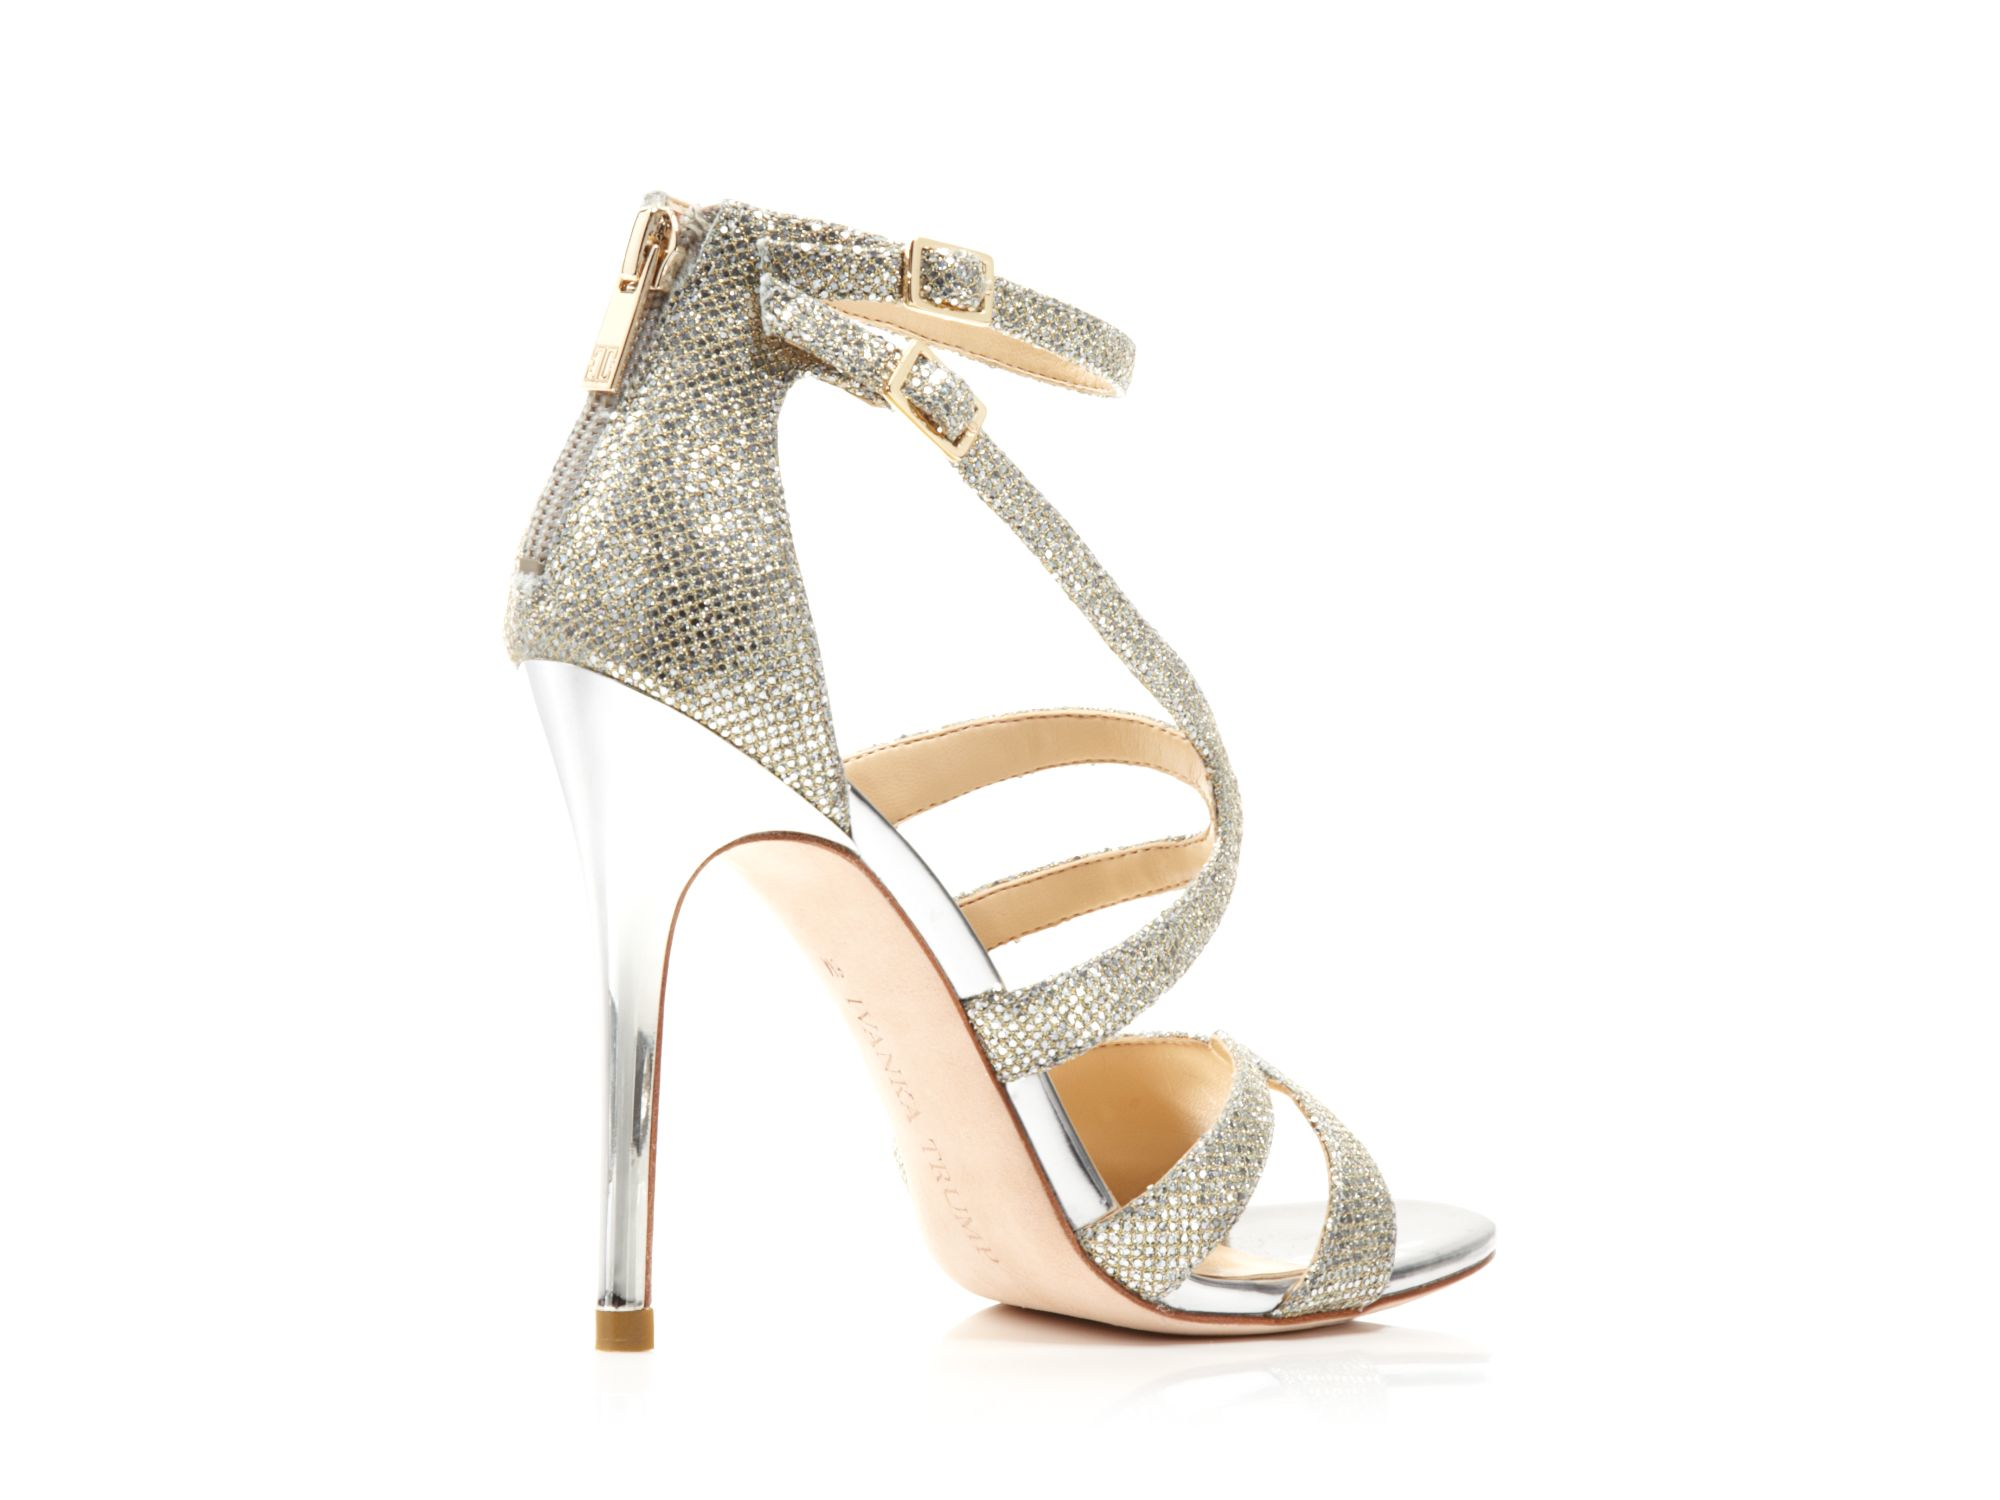 Lyst - Ivanka trump Strappy High Heel Evening Sandals in Metallic